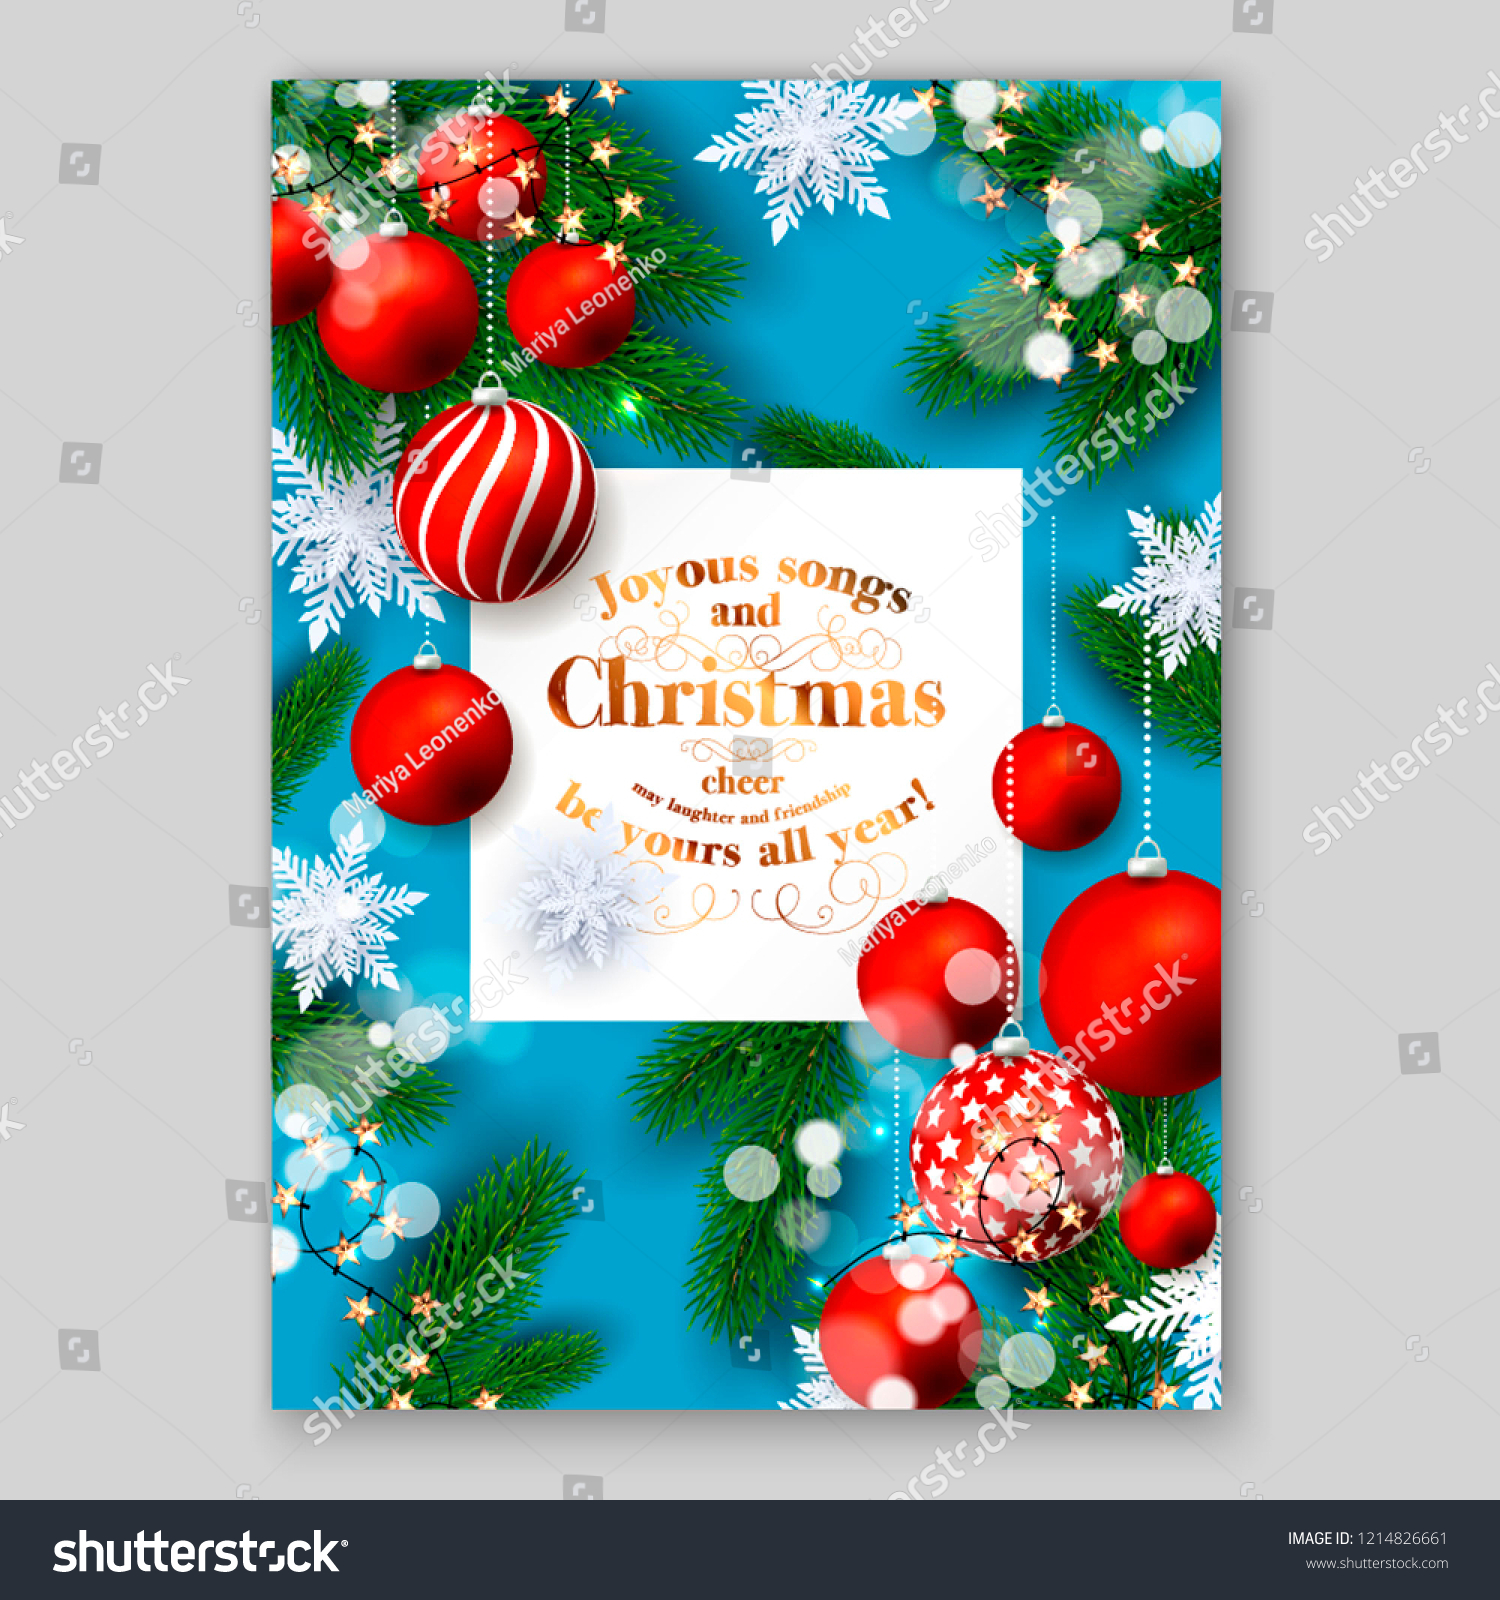 Merry Christmas Party Invitation Fir Red Stock Vector (Royalty Free)  1214826661